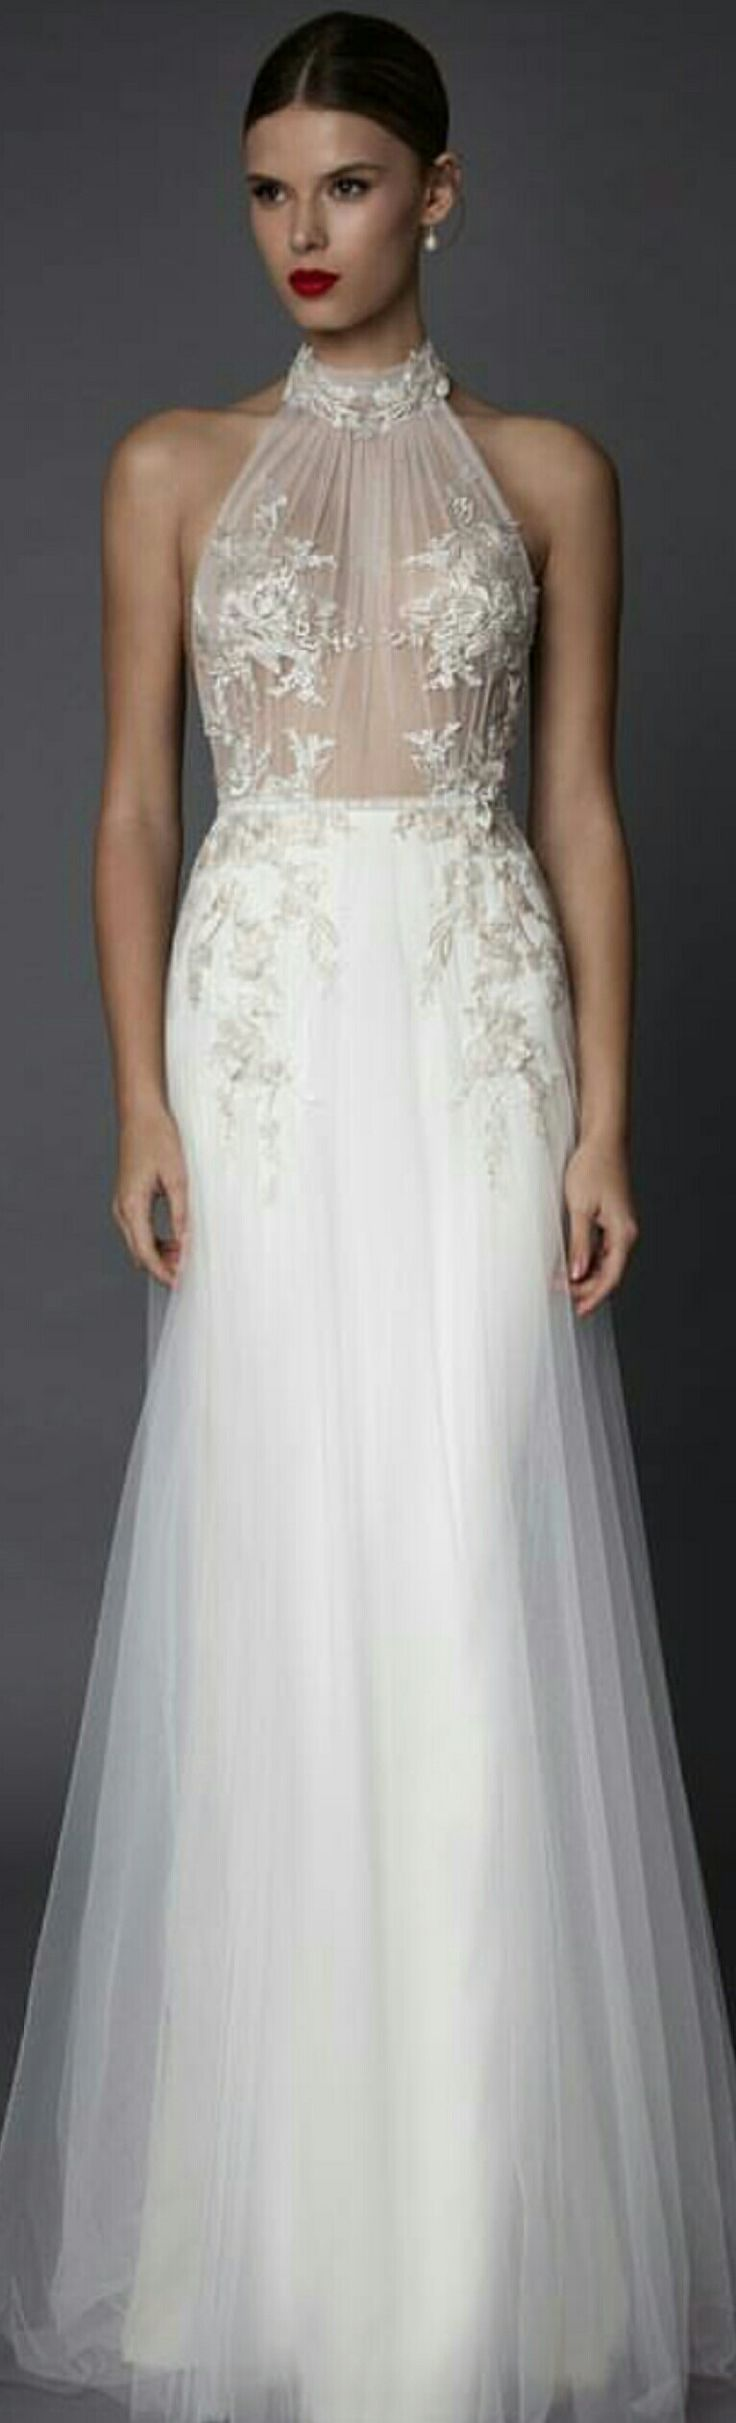 499 best BRIDAL images on Pinterest | Bridal gowns, Brides and Gown ...